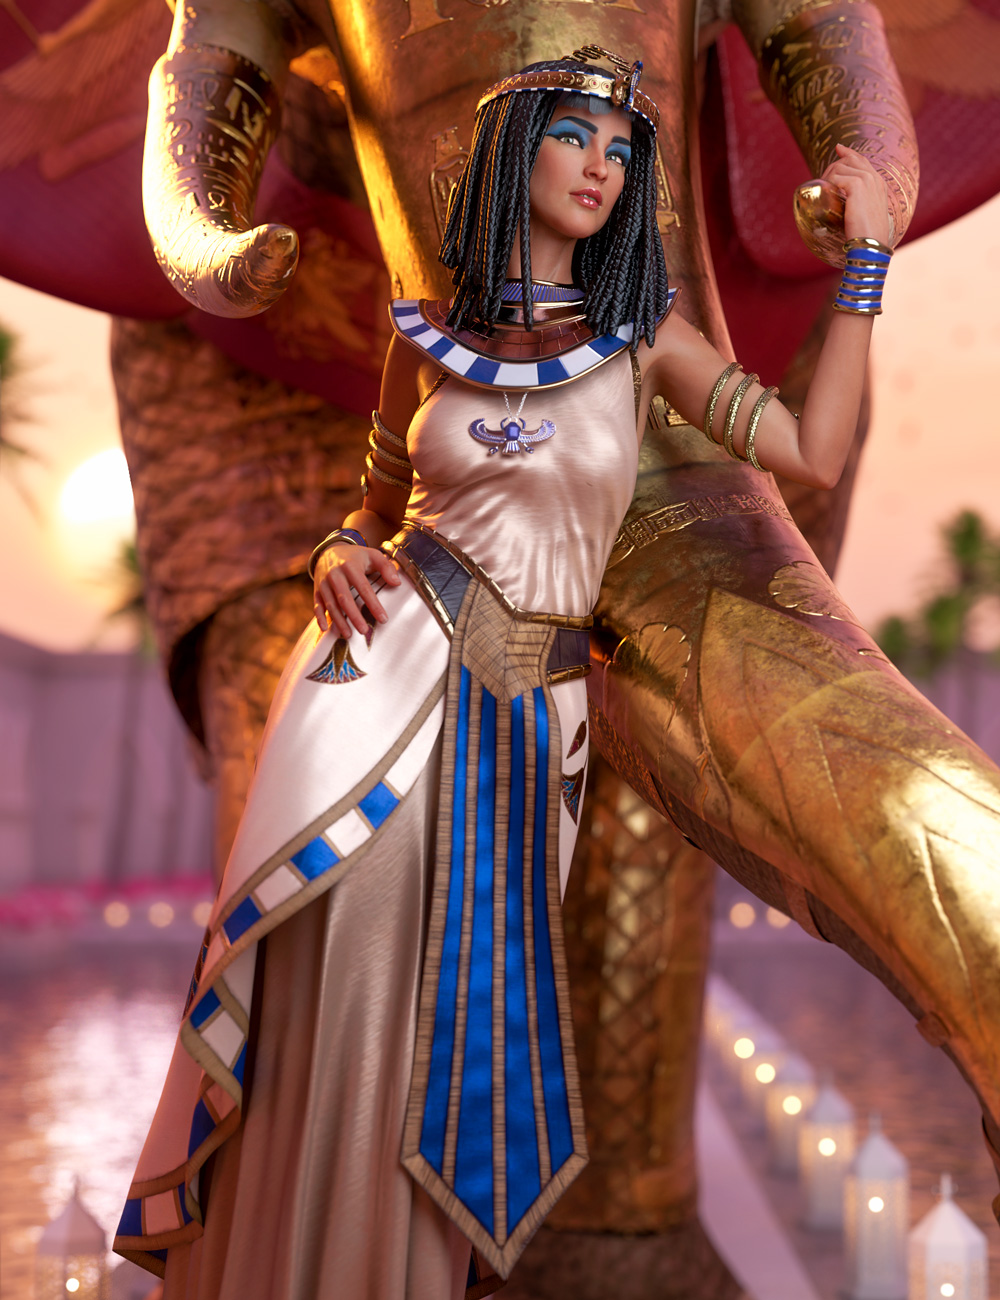 dForce Queen of Egypt Outfit for Genesis 8 Females by: Barbara Brundon, 3D Models by Daz 3D